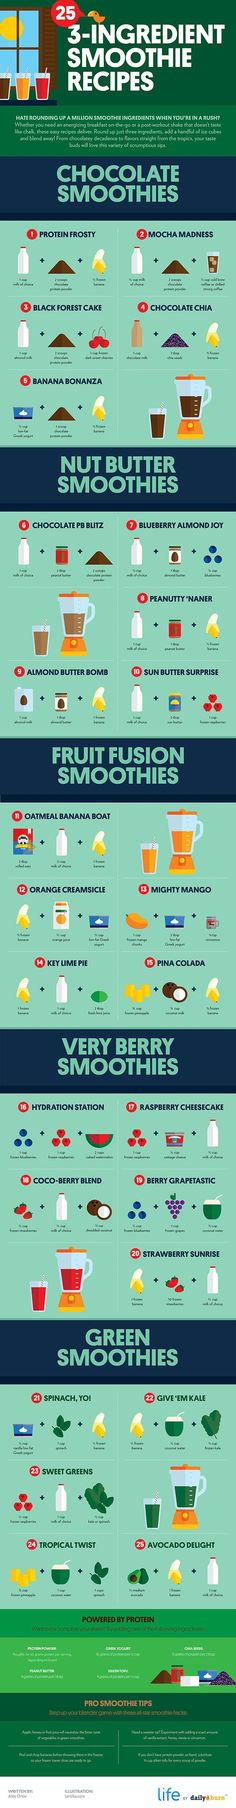 3-ingredient smoothie recipes